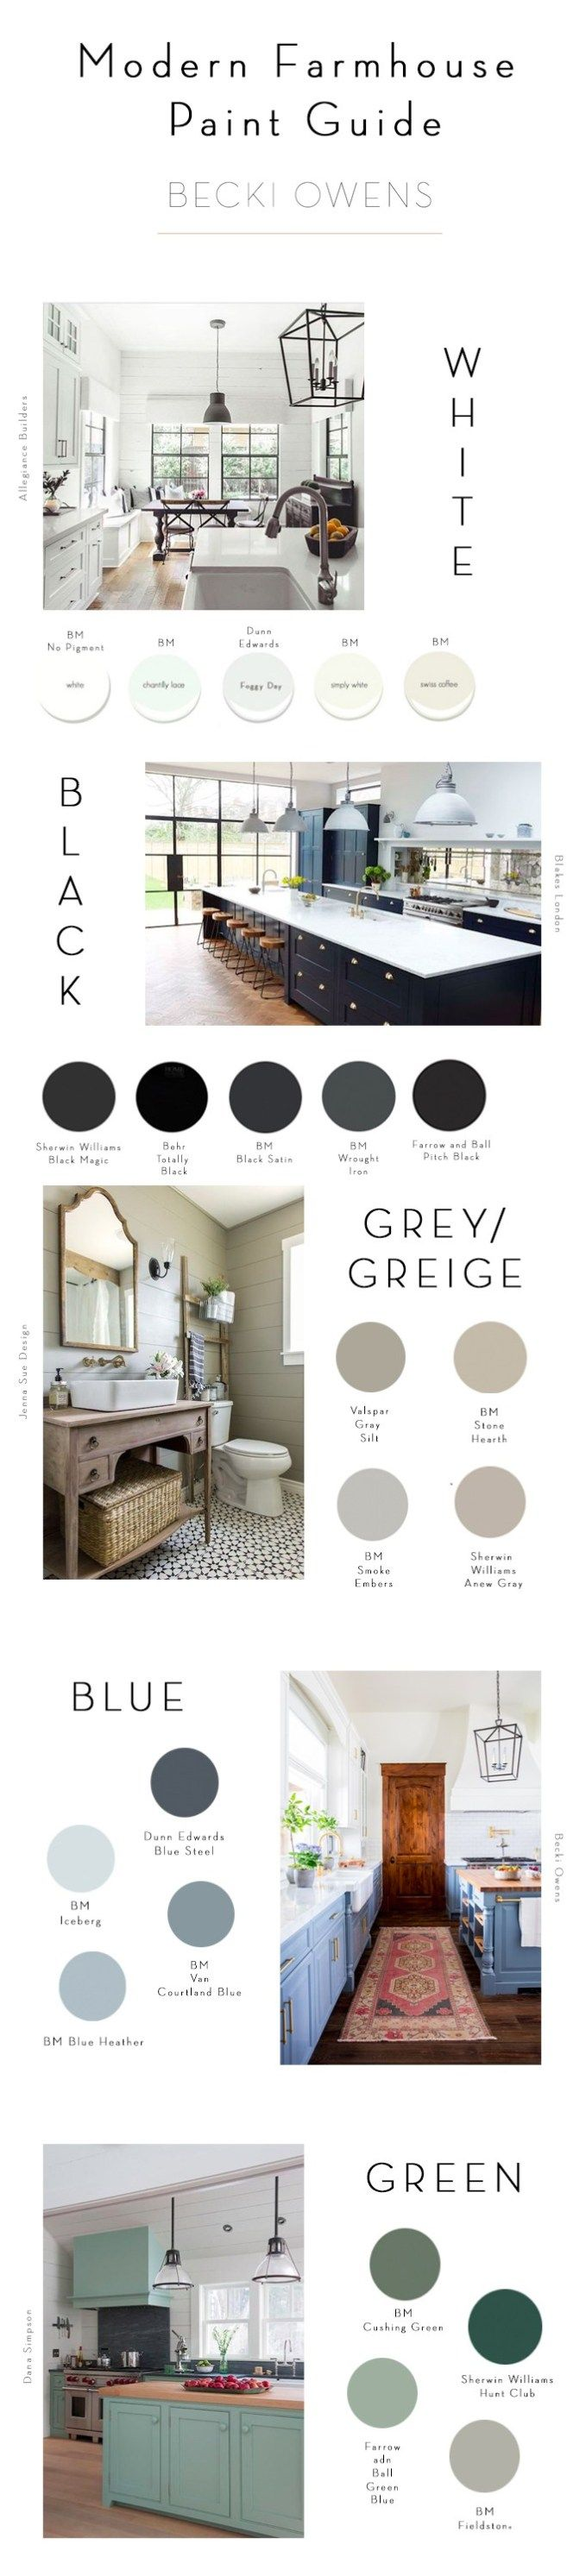 colors of the modern farmhouse paint guidebecki owens on industrial farmhouse paint colors id=47955